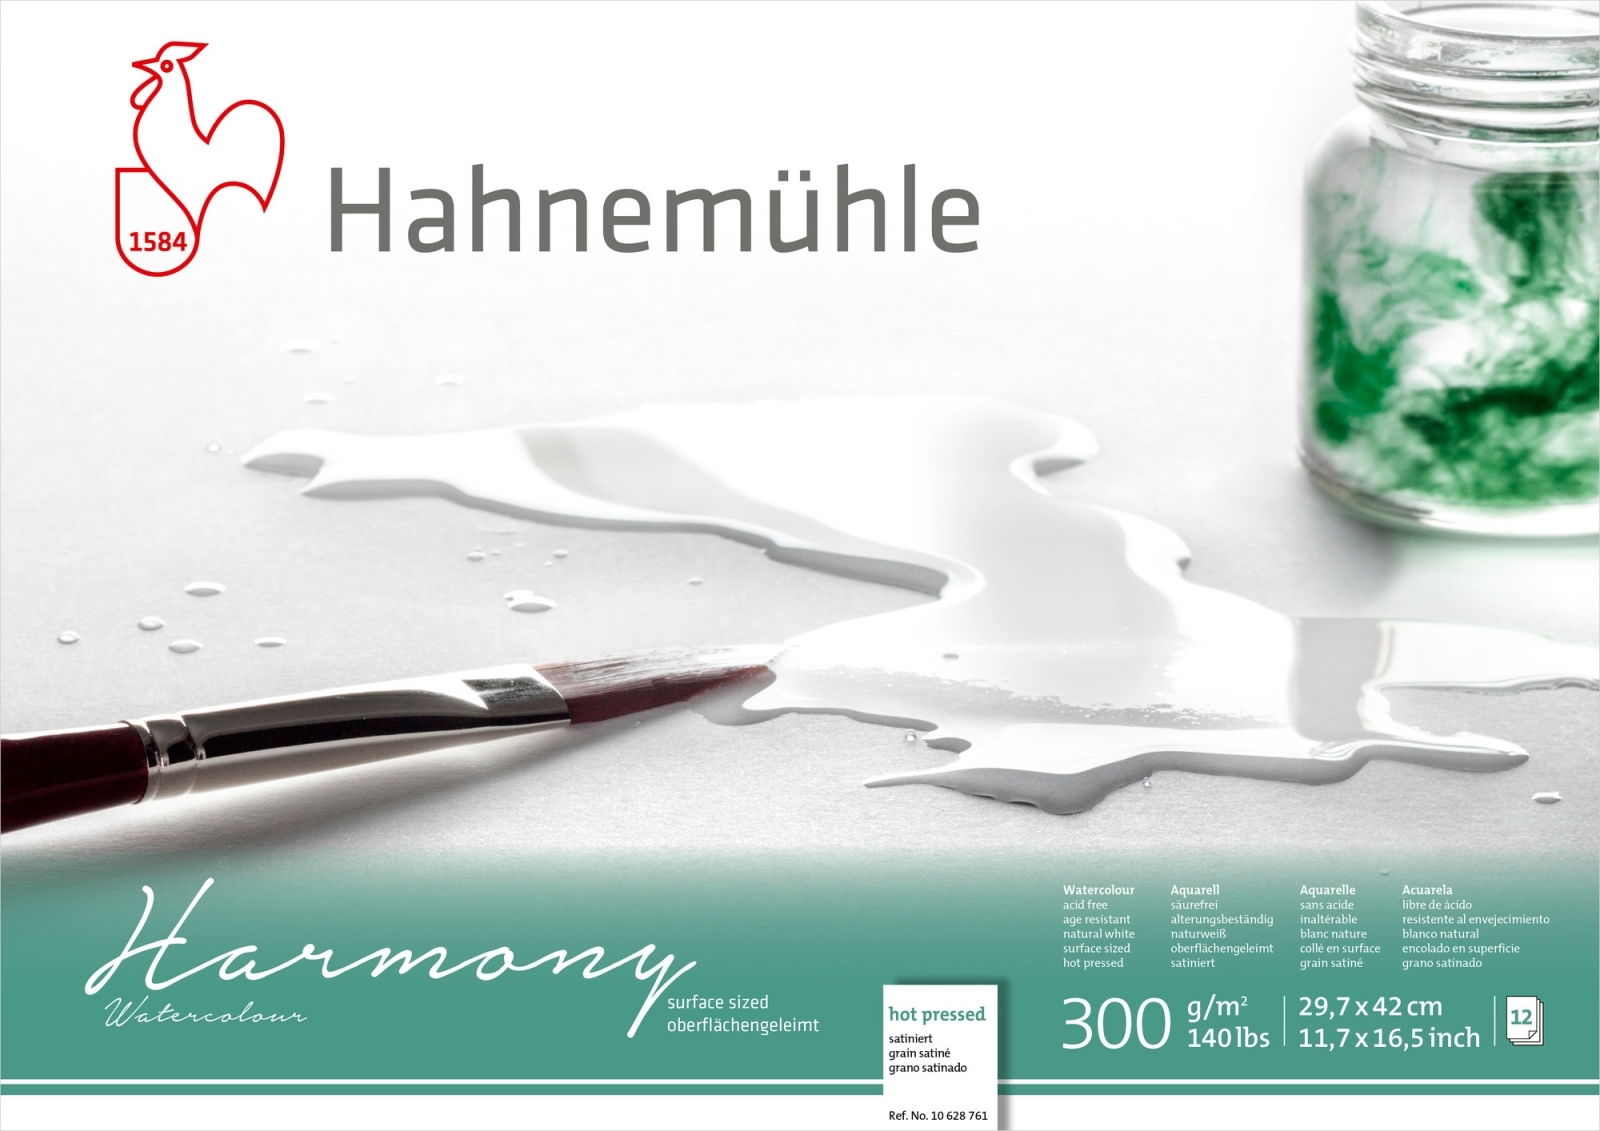 PAPEL HAHNEMUHLE HARMONY WATERCOLOUR, 300 G/M², HOT PRESSED 12fls 29,7X42cm - A3 (10628761) - Papelaria Botafogo